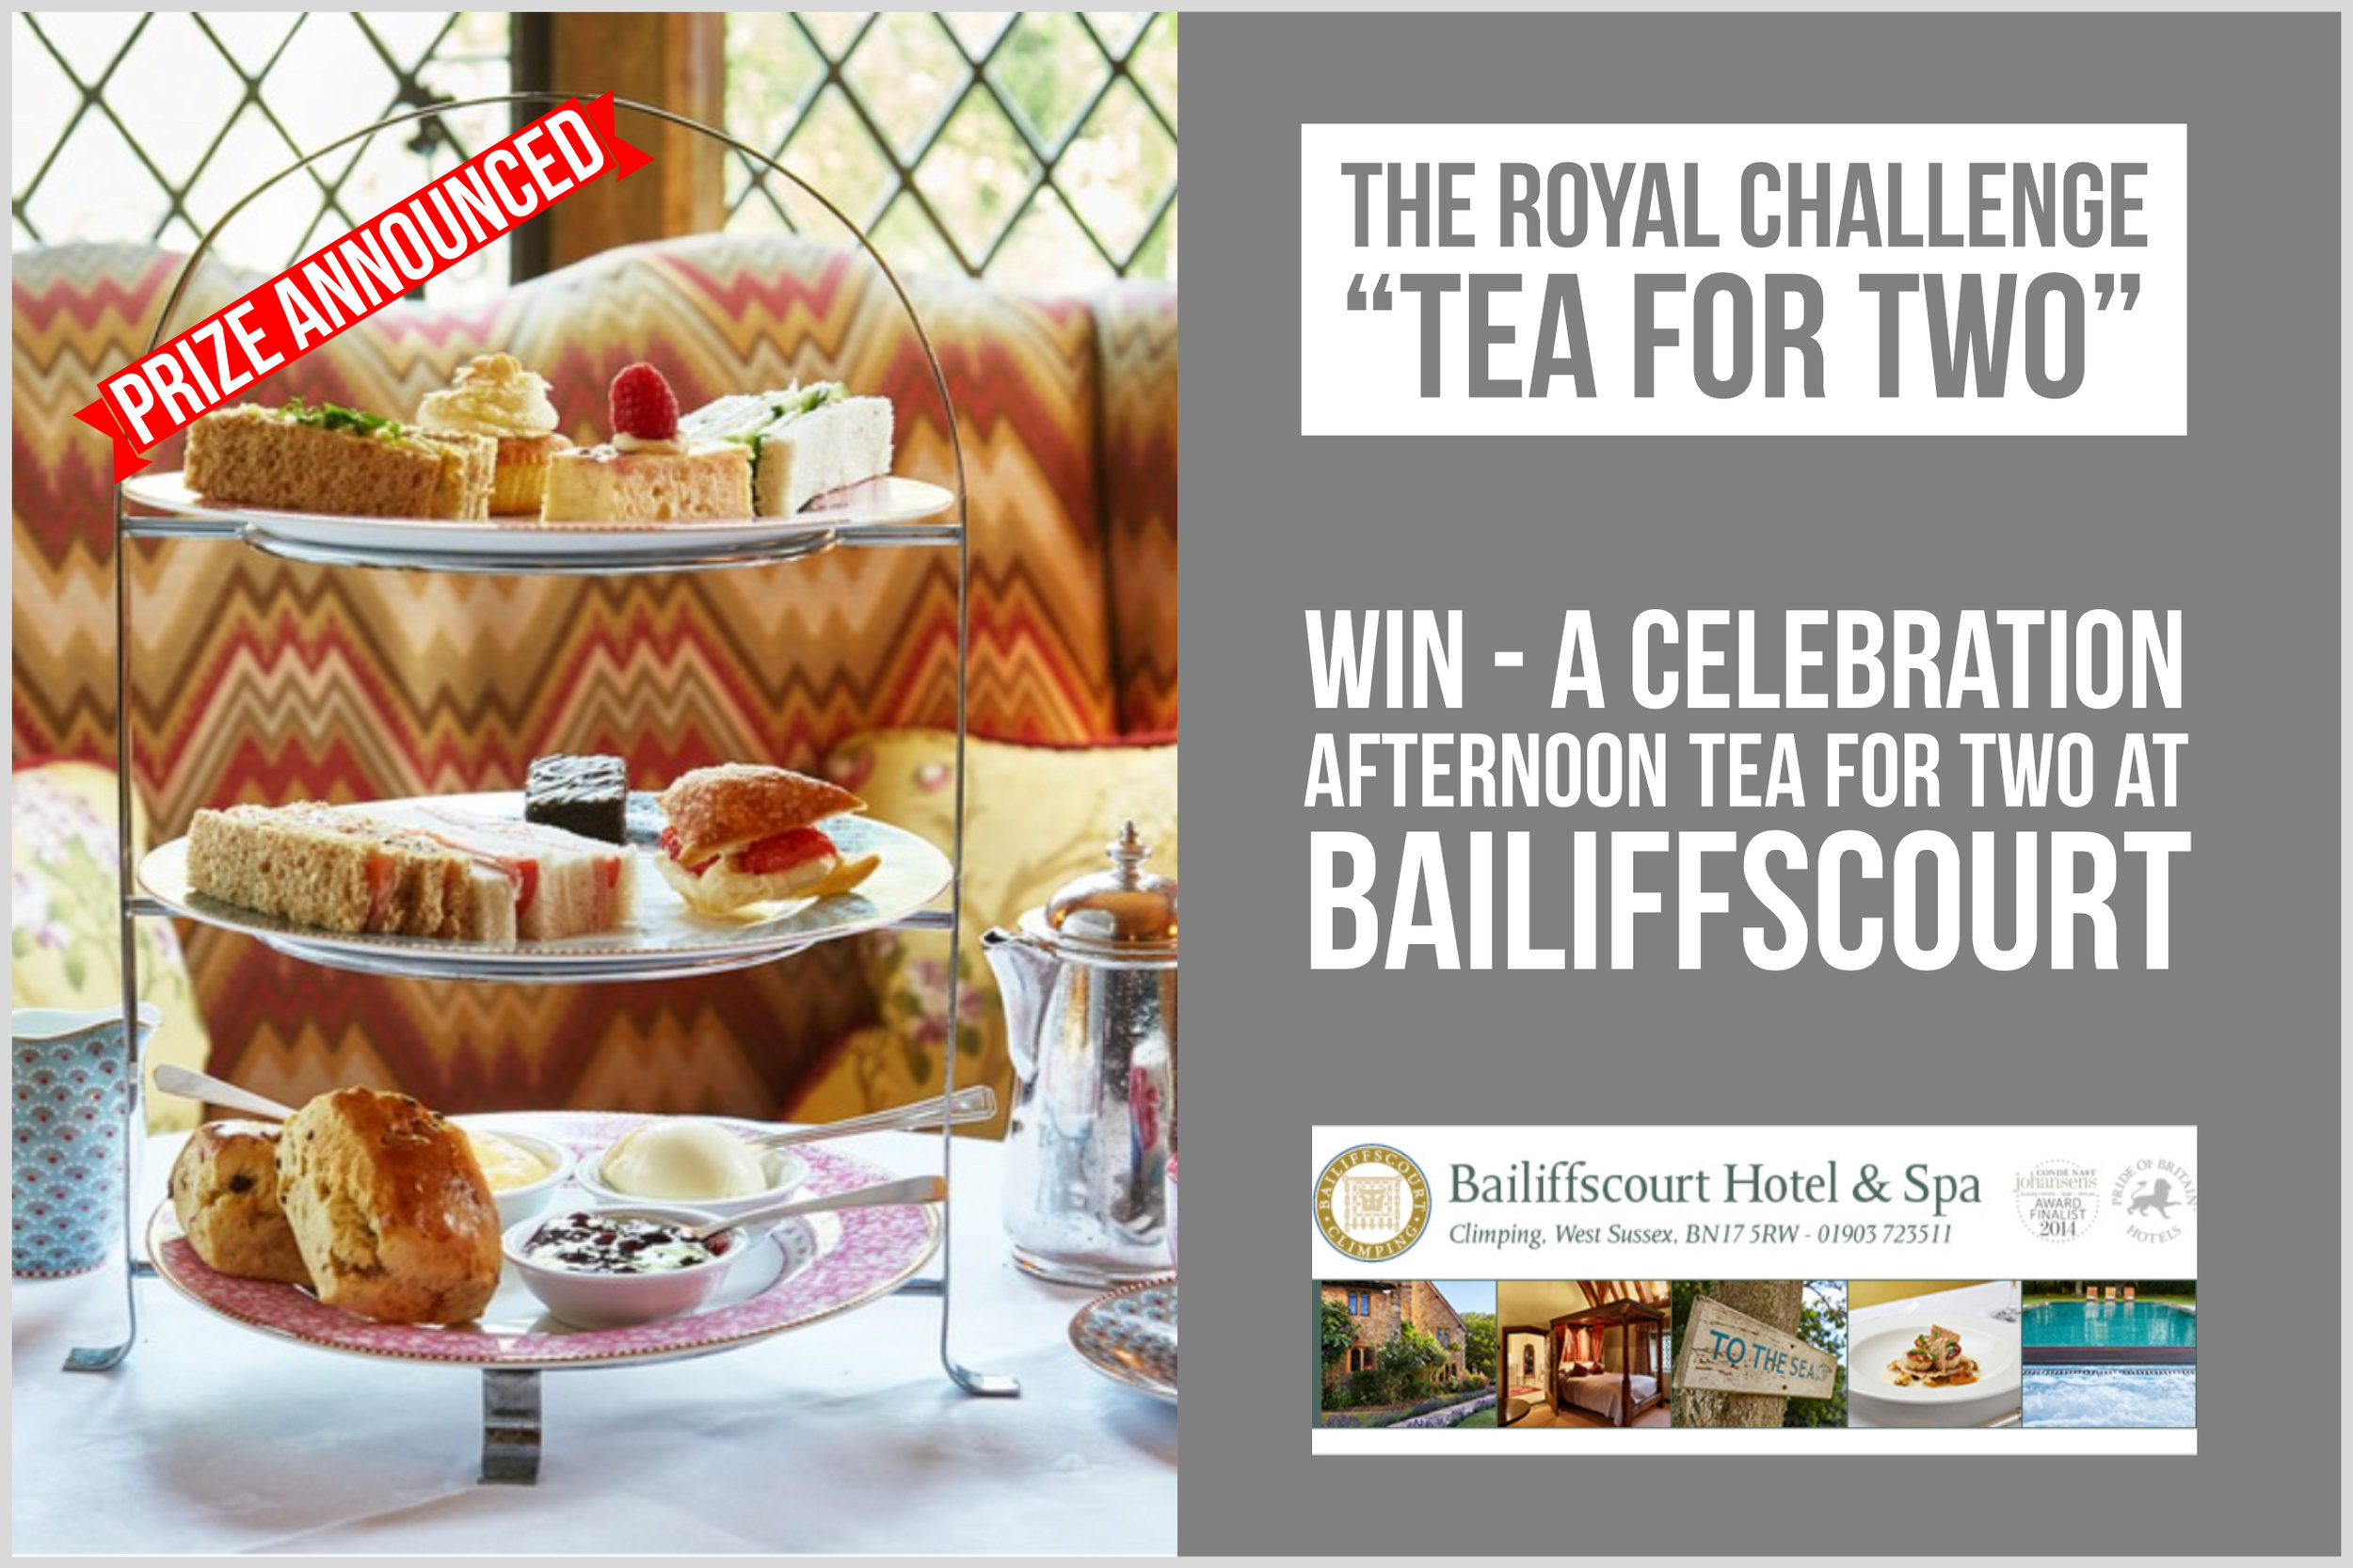 Take part in the Wick Village Royal Challenge Tea For Two and be in with the chance of winning a Celebration Afternoon Tea for Two at Bailiffscourt.